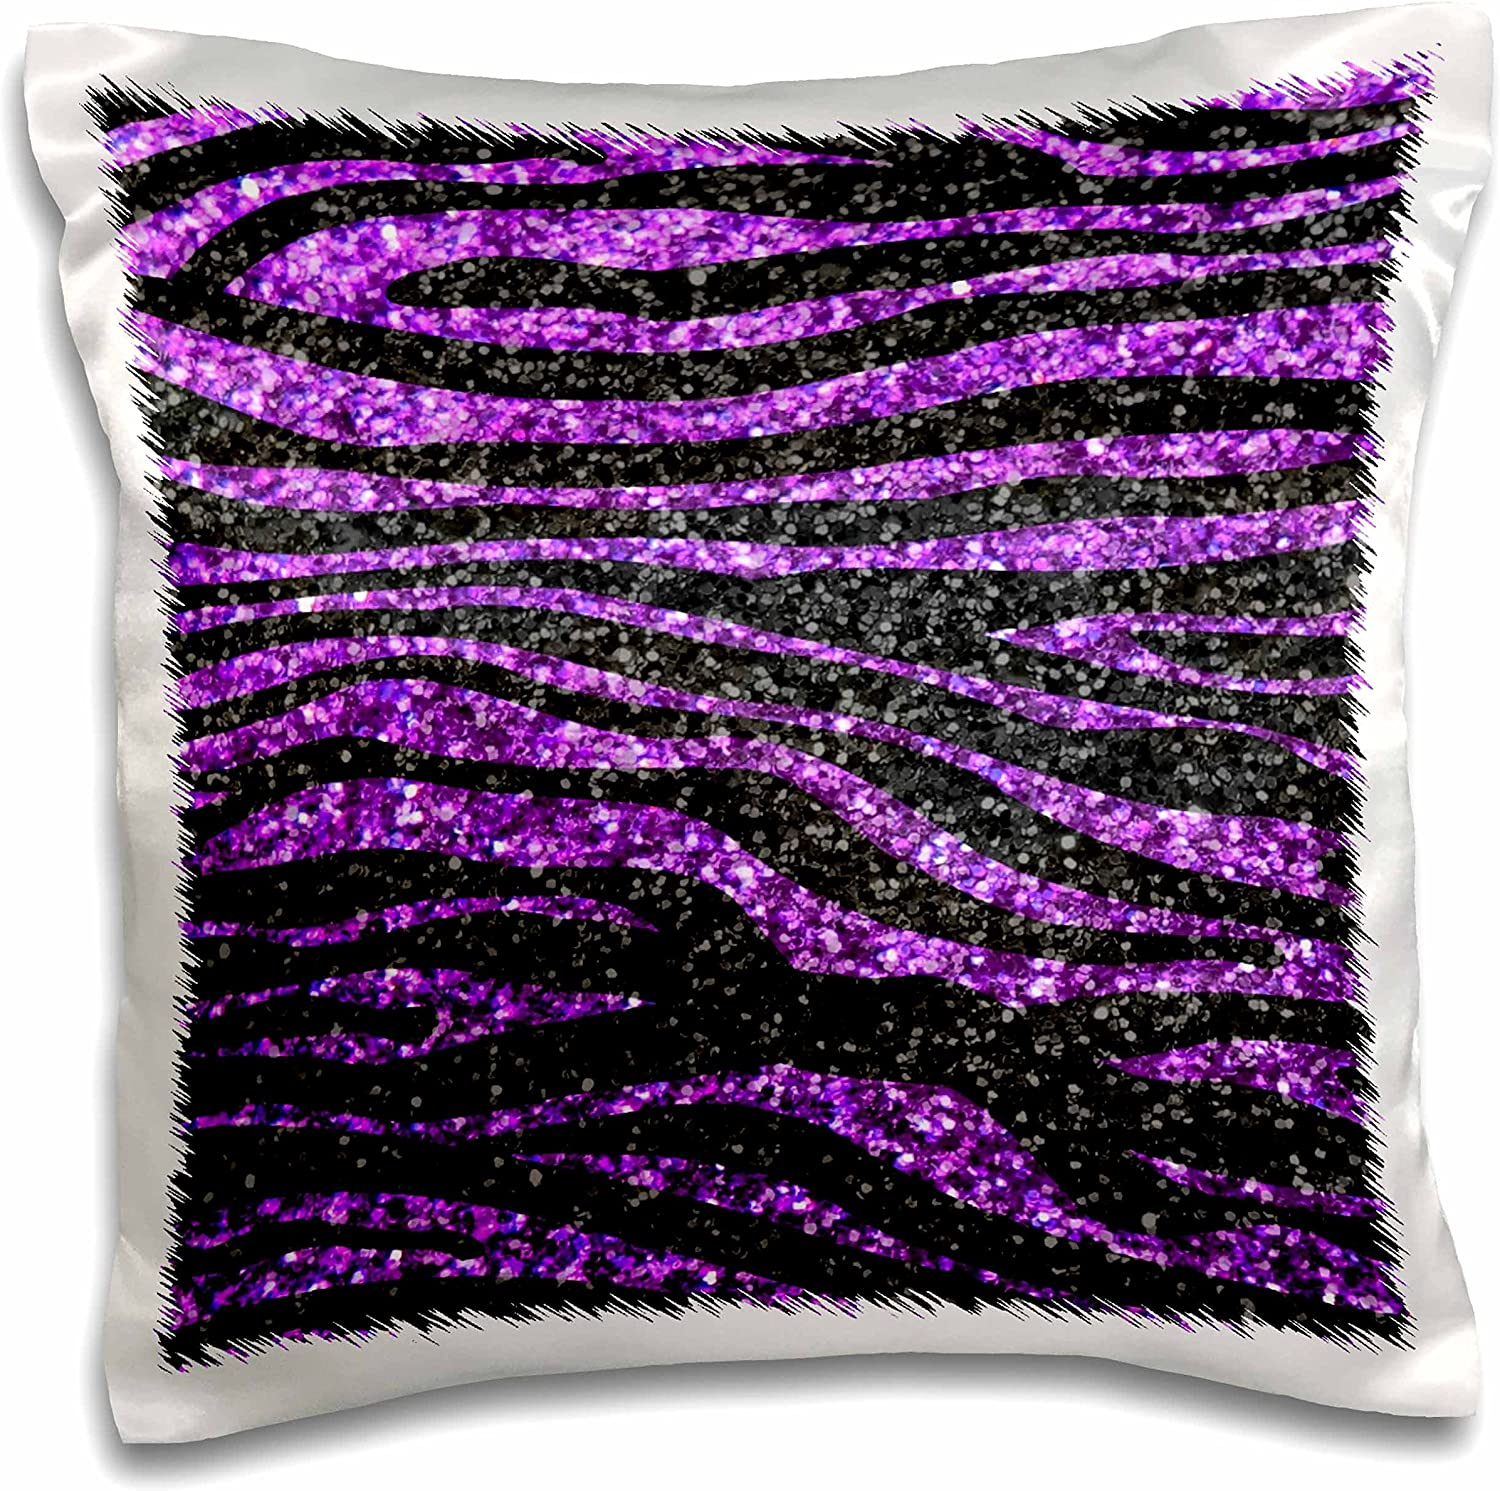 """3dRose Purple and Black Zebra Stripe Print Faux Bling Photo Not Actual Glitter Glittery Sparkles Sparkly-Pillow Case, 16 by 16"""" (pc_113175_1)"""